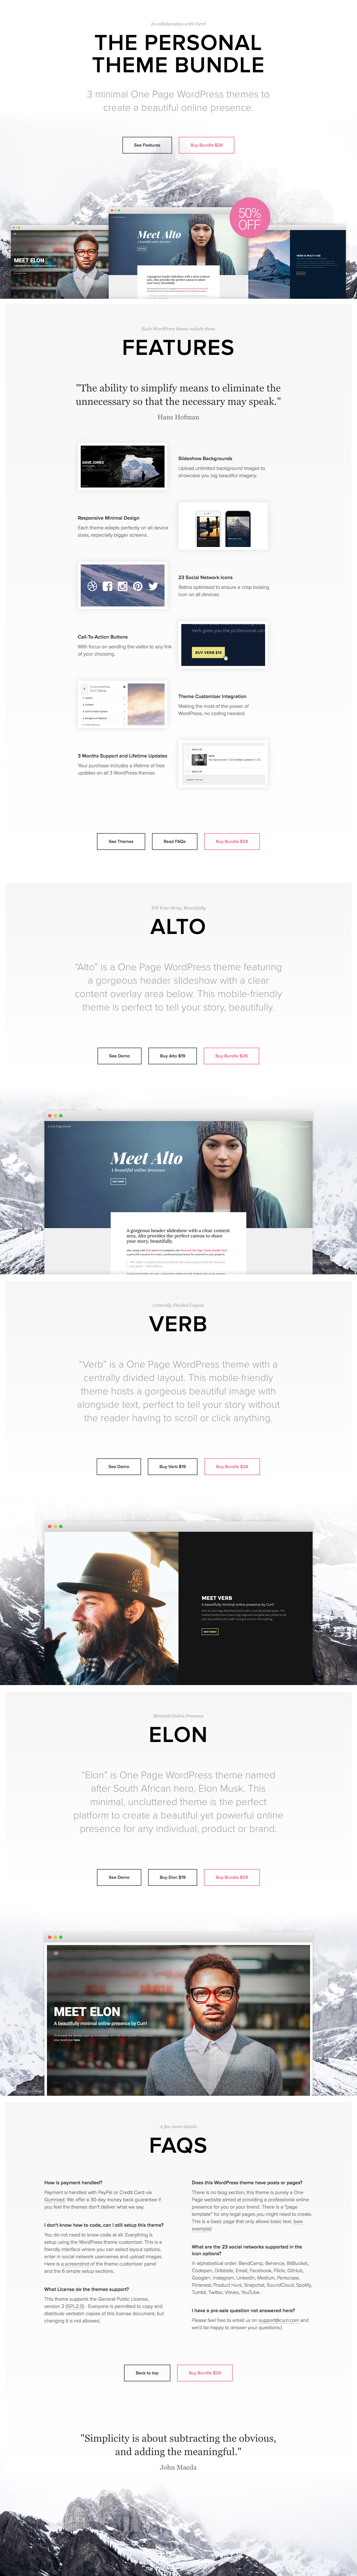 We've teamed up with @letscurrl to bring you this awesome Personal Theme Bundle deal! That's 3 minimal One Page WordPress themes to create a beautiful online presence at a 50% saving.